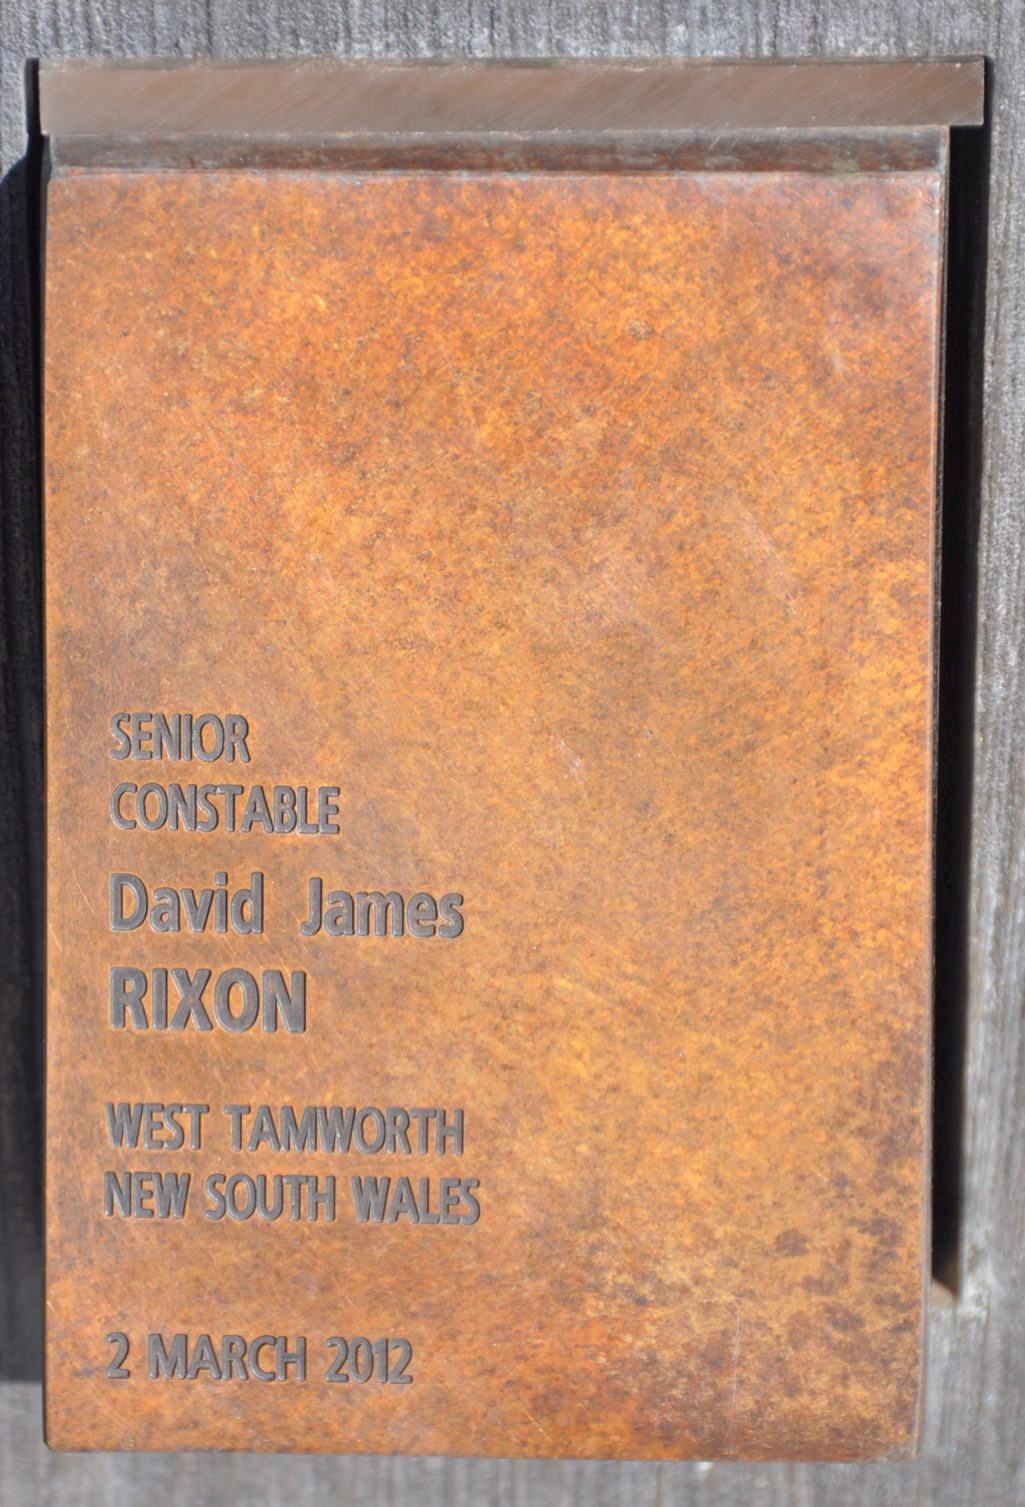 David James RIXON - touch pad at National Police Wall of Remembrance, ACT